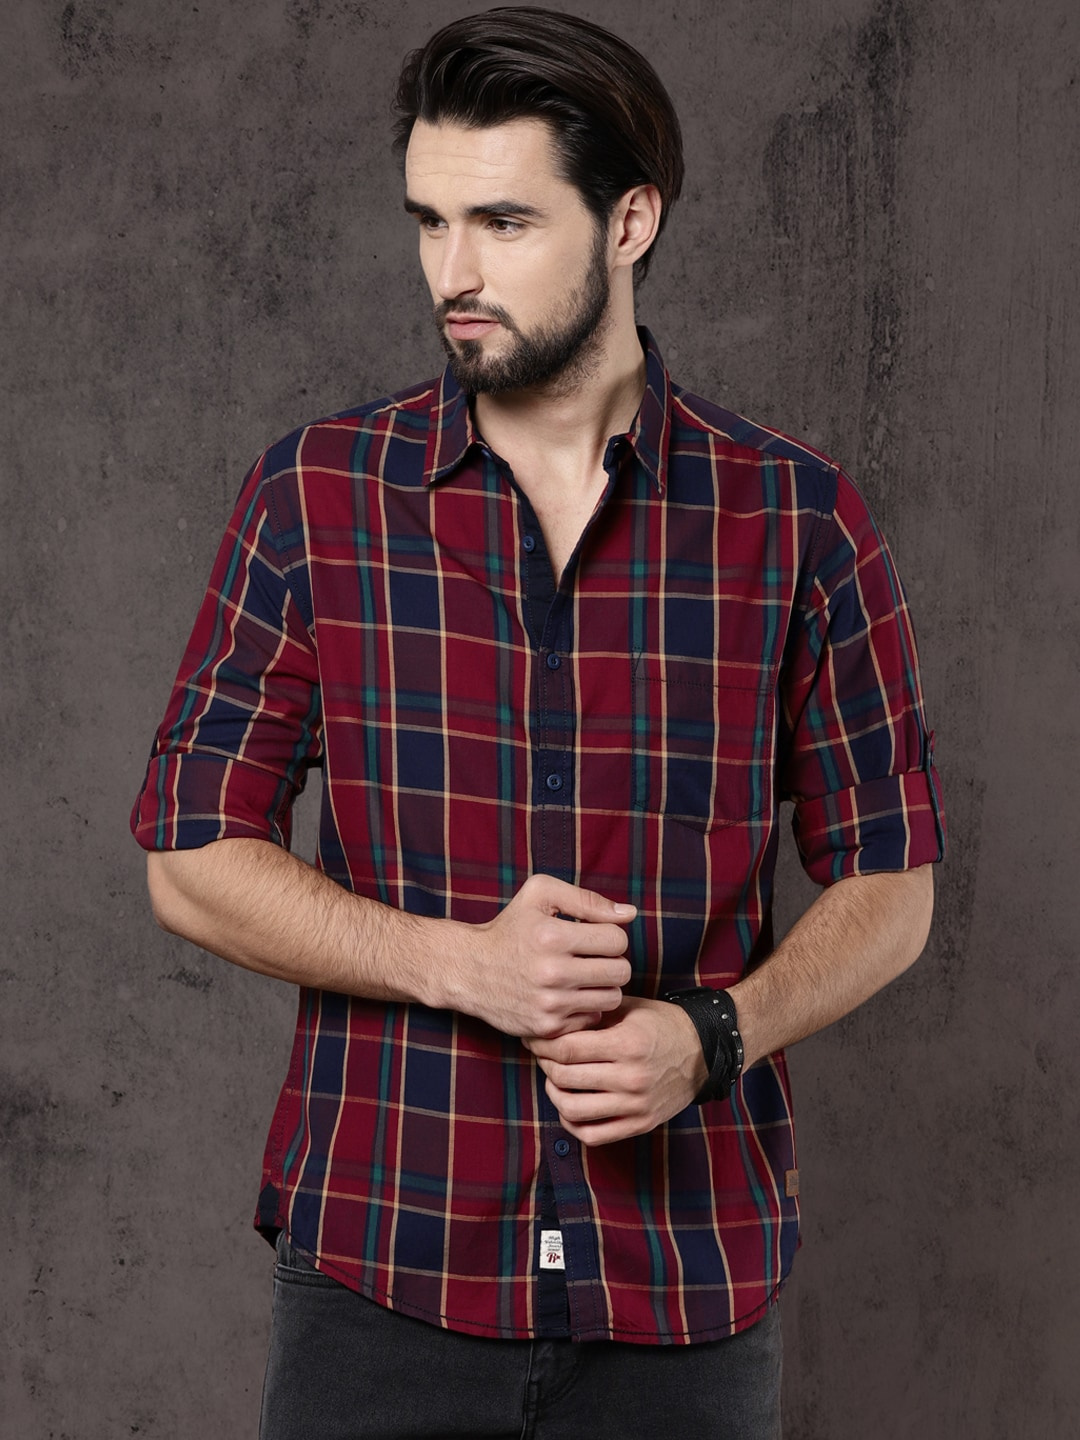 91b9dfcf1 Casual Shirts | Buy Casual Shirts Online in India at Best Price